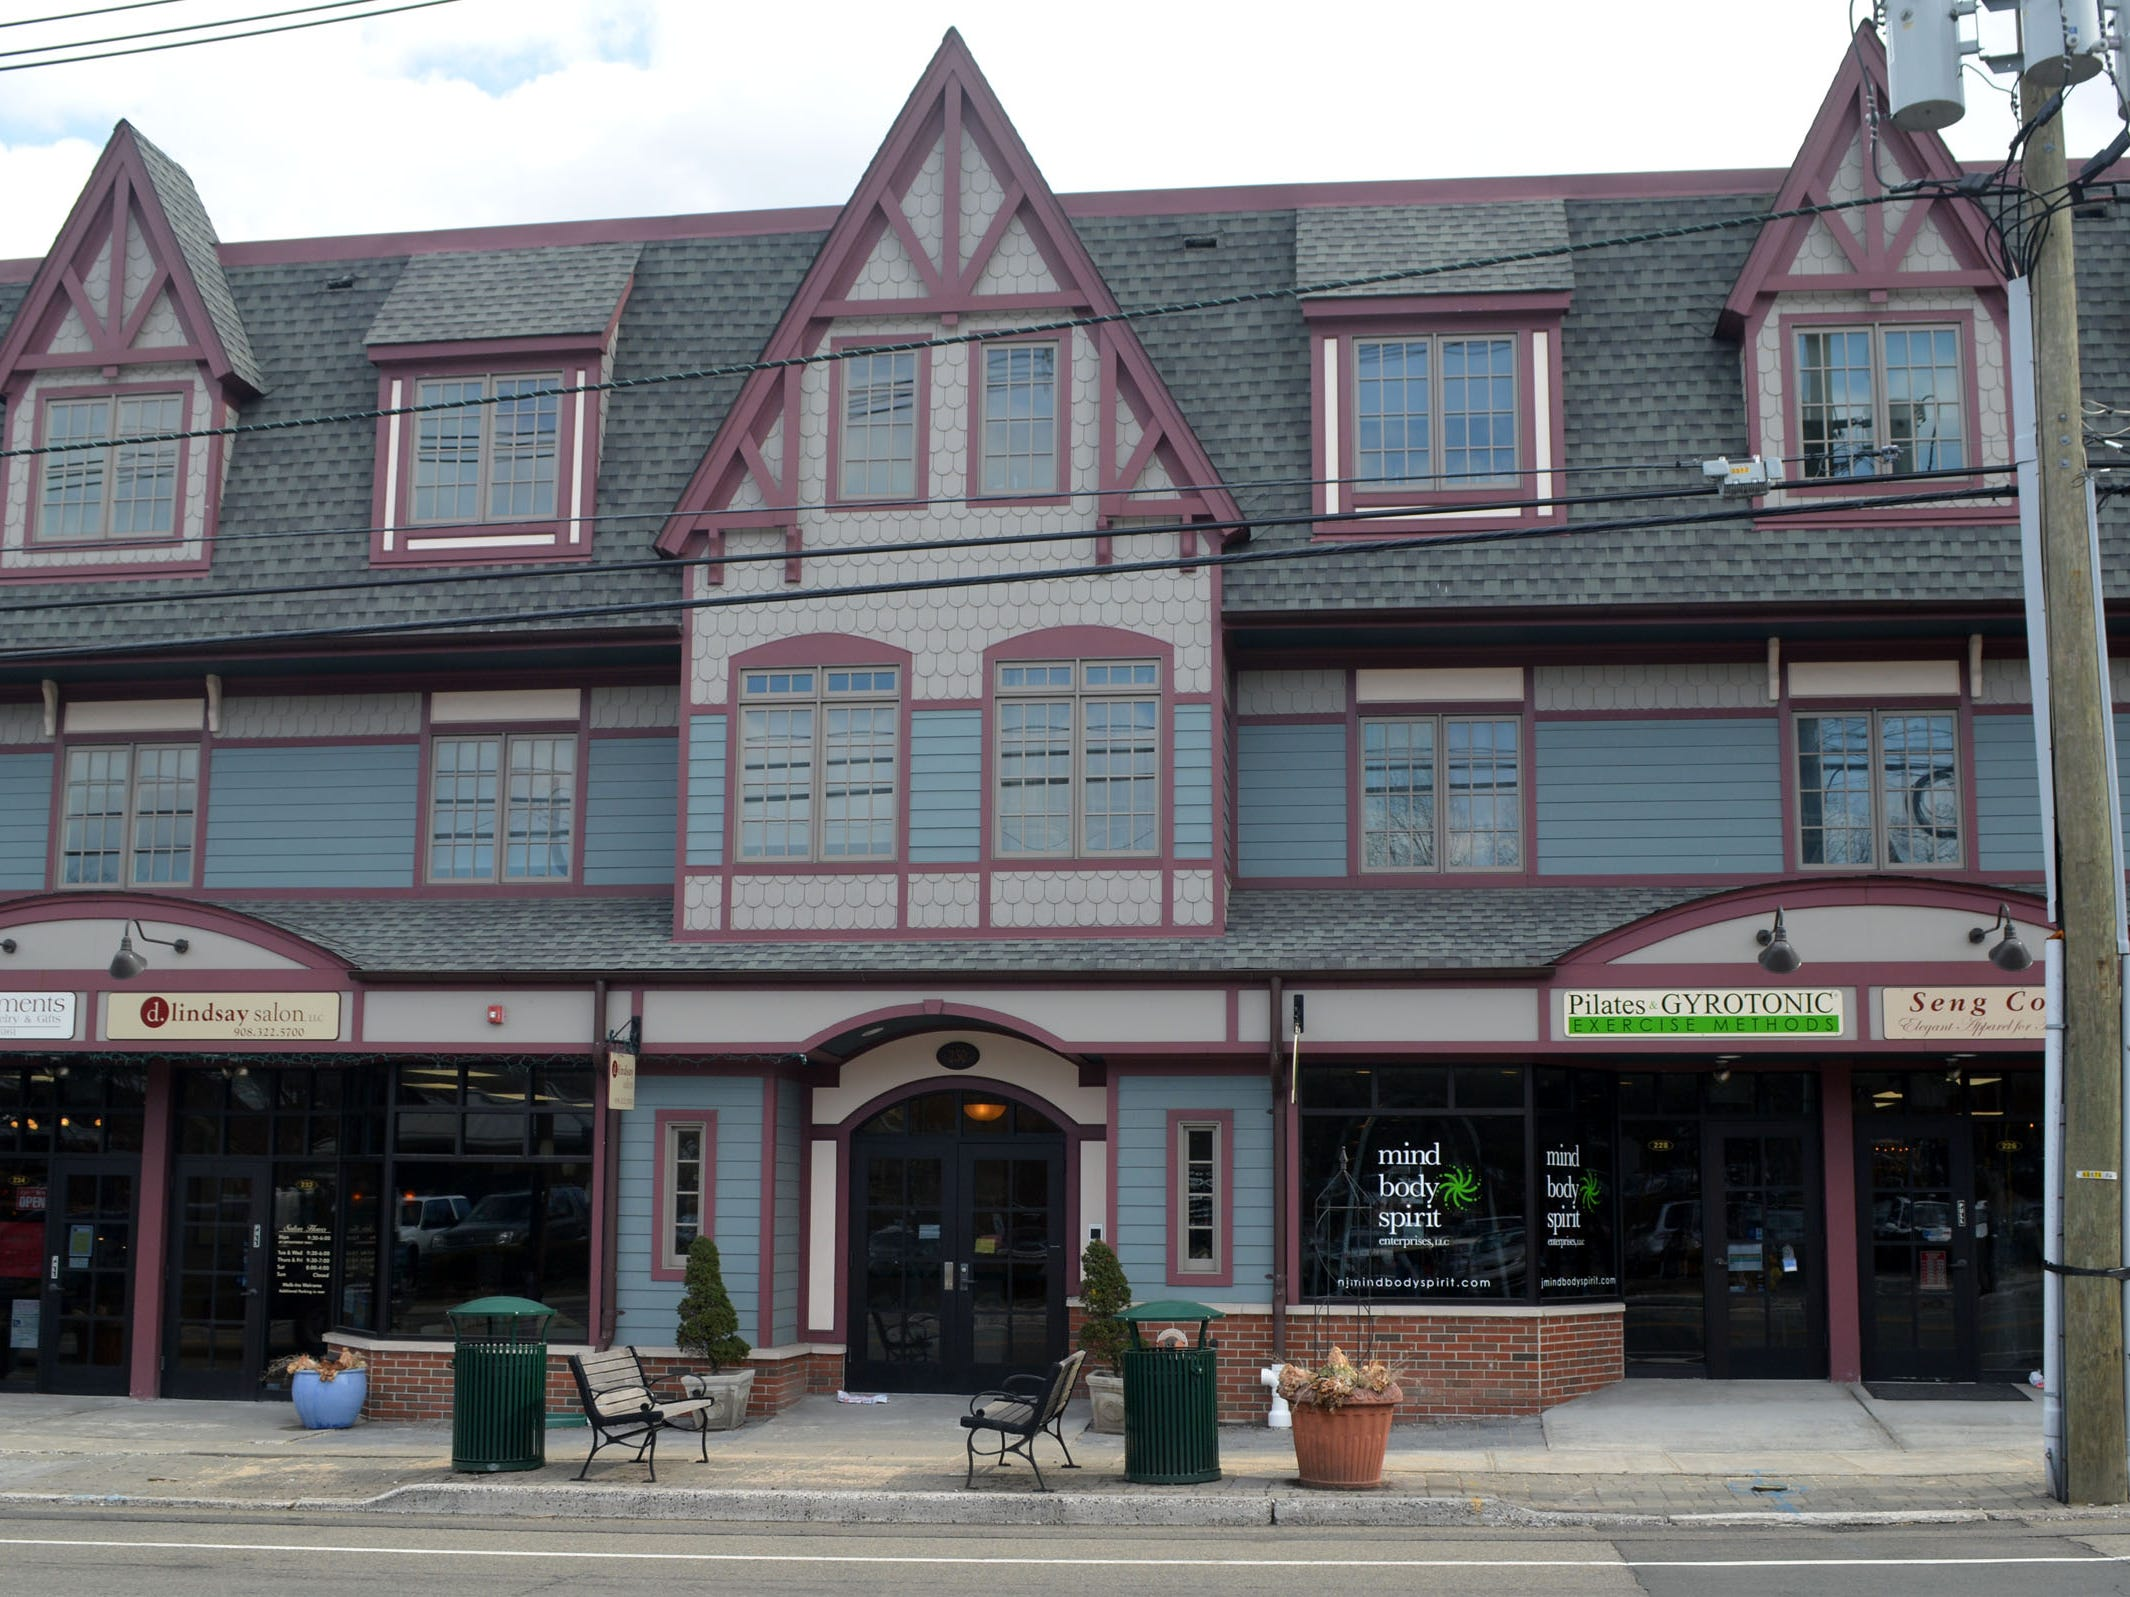 230 South Ave. in Fanwood was developed by Helen Lang, owner for the past 29 years of the Enchantments shop of handcrafted items. She built this multi-use property at the site of her original store.